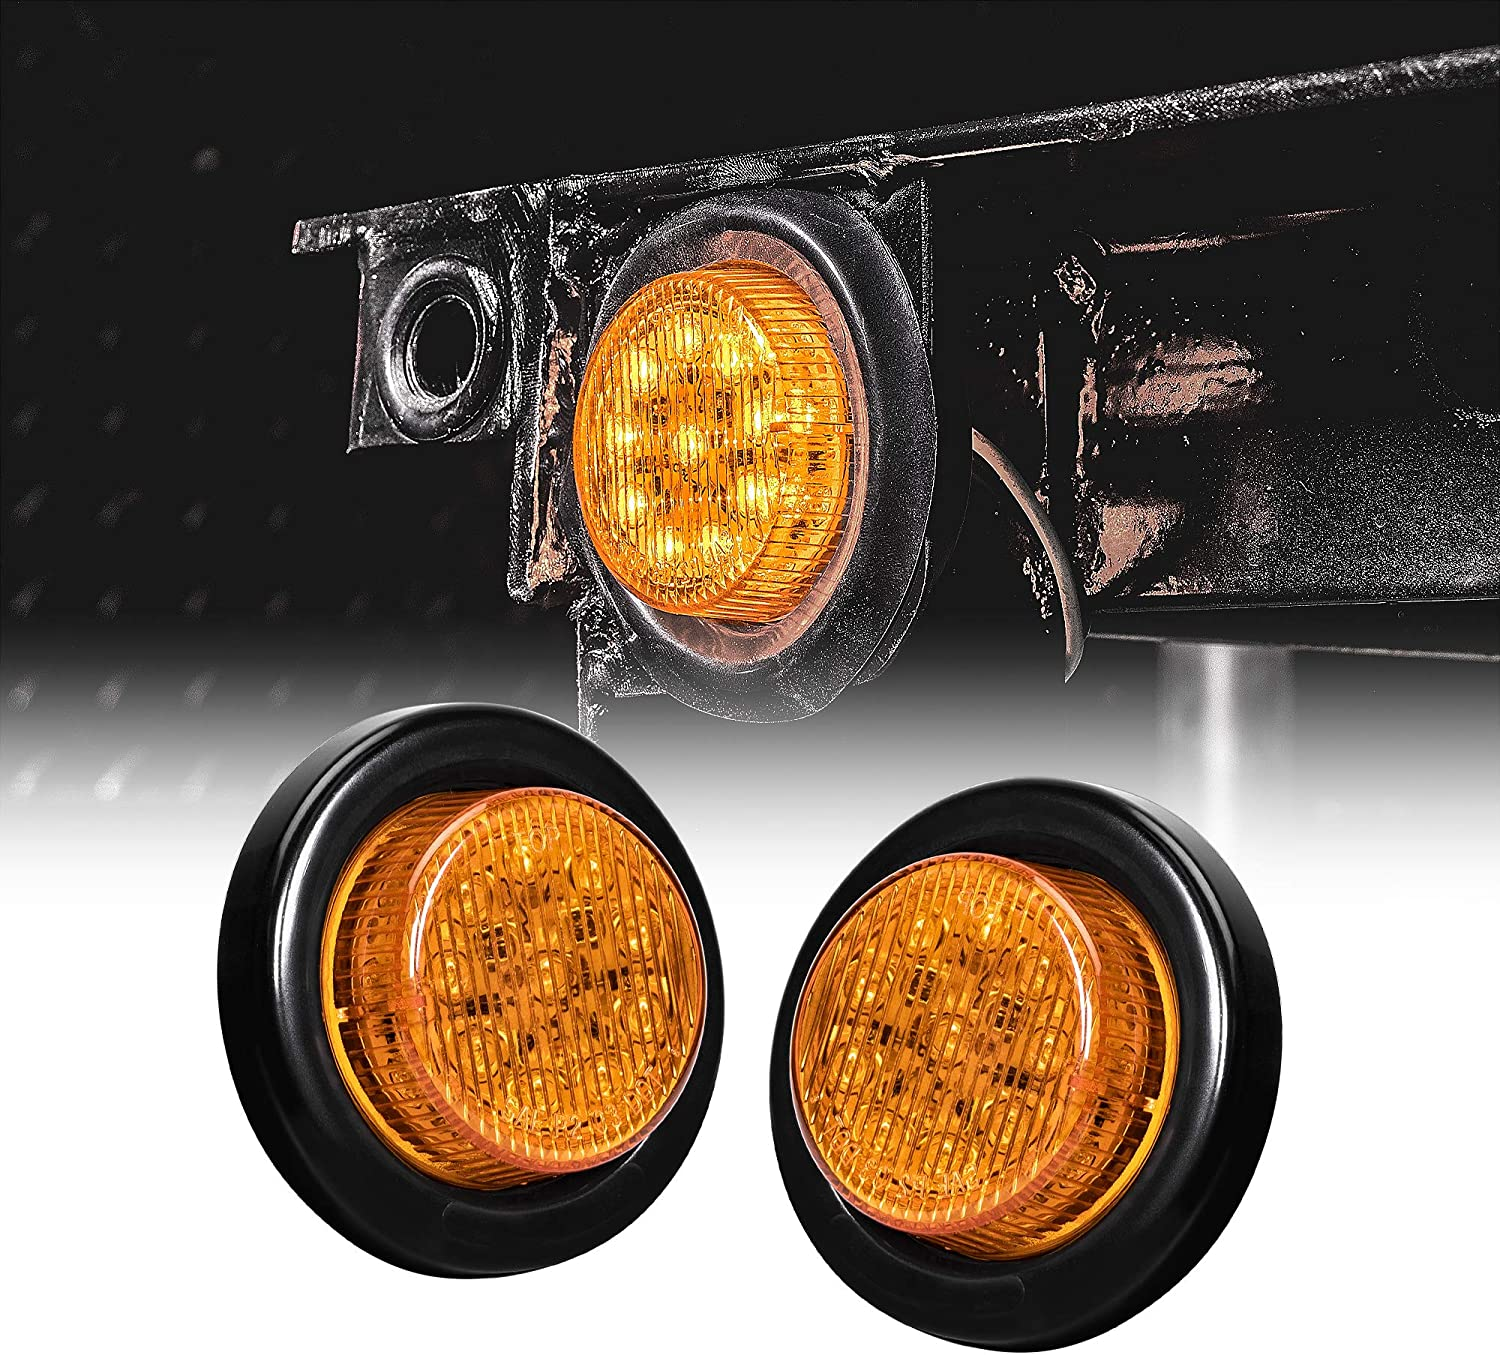 """2PC OLS 2.5/"""" Round Amber 13 LED Clearance Light 2 in 1 Reflector for Trucks"""